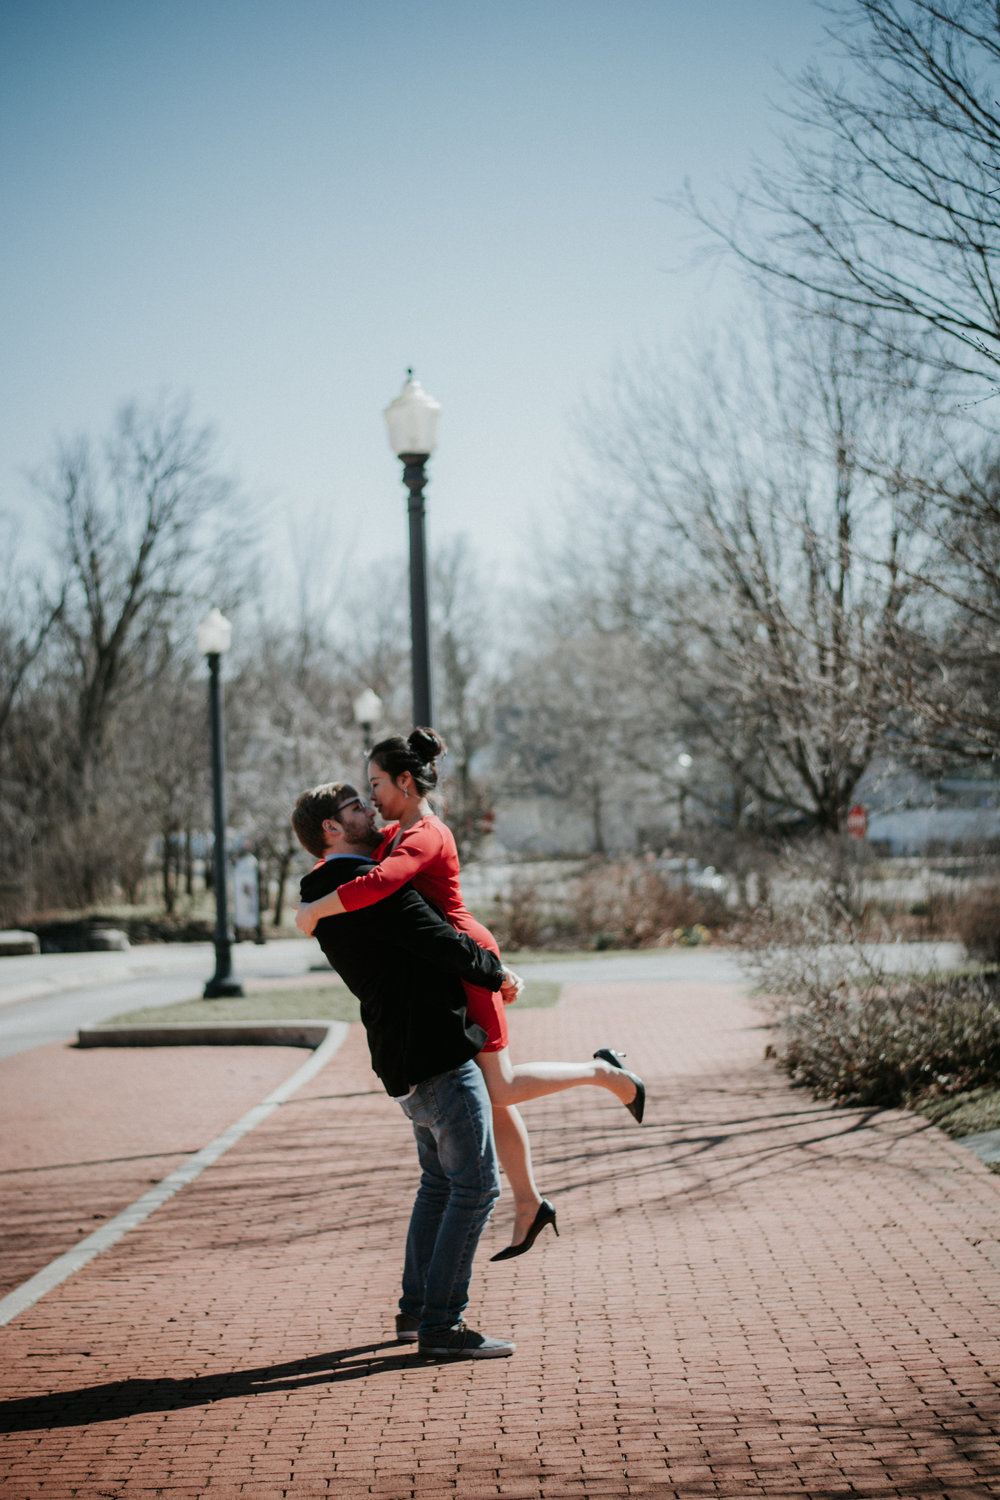 Nina&Michael_EngagmentSession_March2017_Muncie_SamanthaRosePhotography_014.JPG